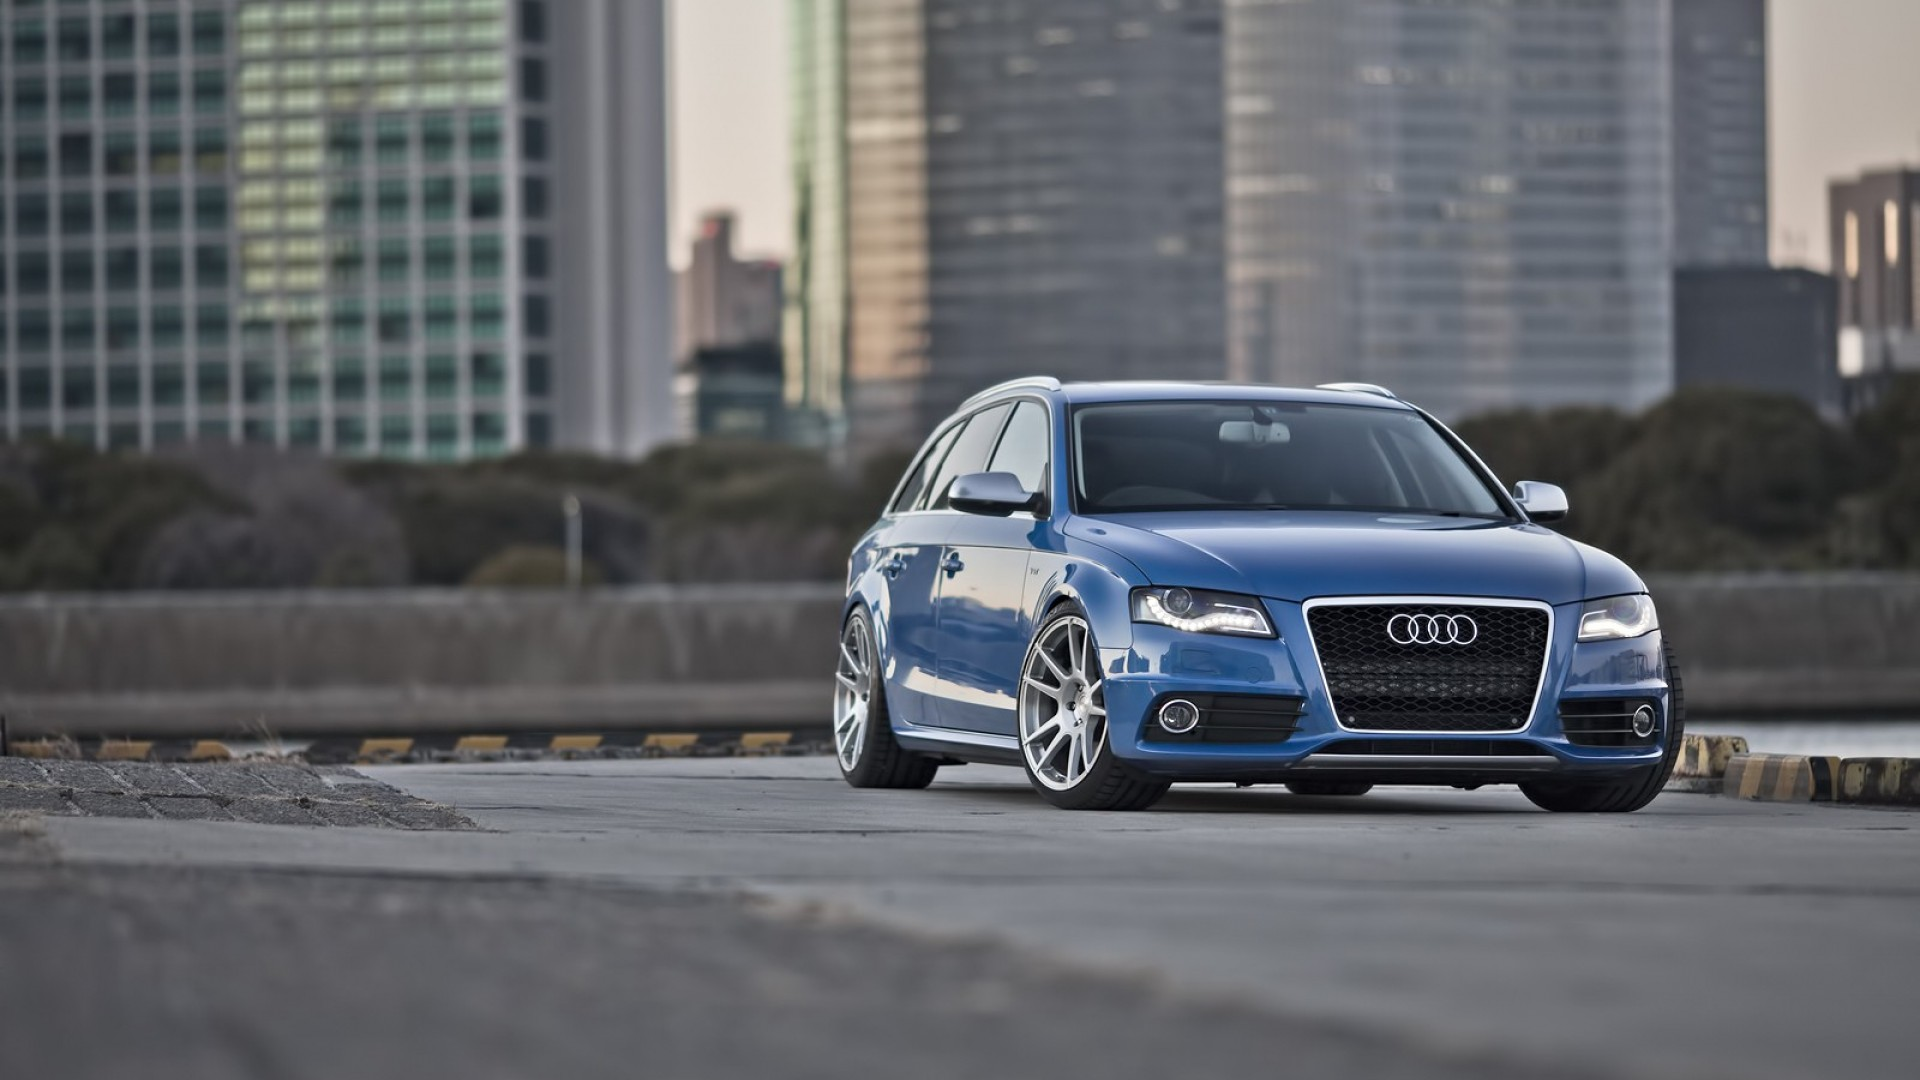 3d Car Live Wallpaper Free Download Audi S4 Blue Hd Desktop Wallpapers 4k Hd